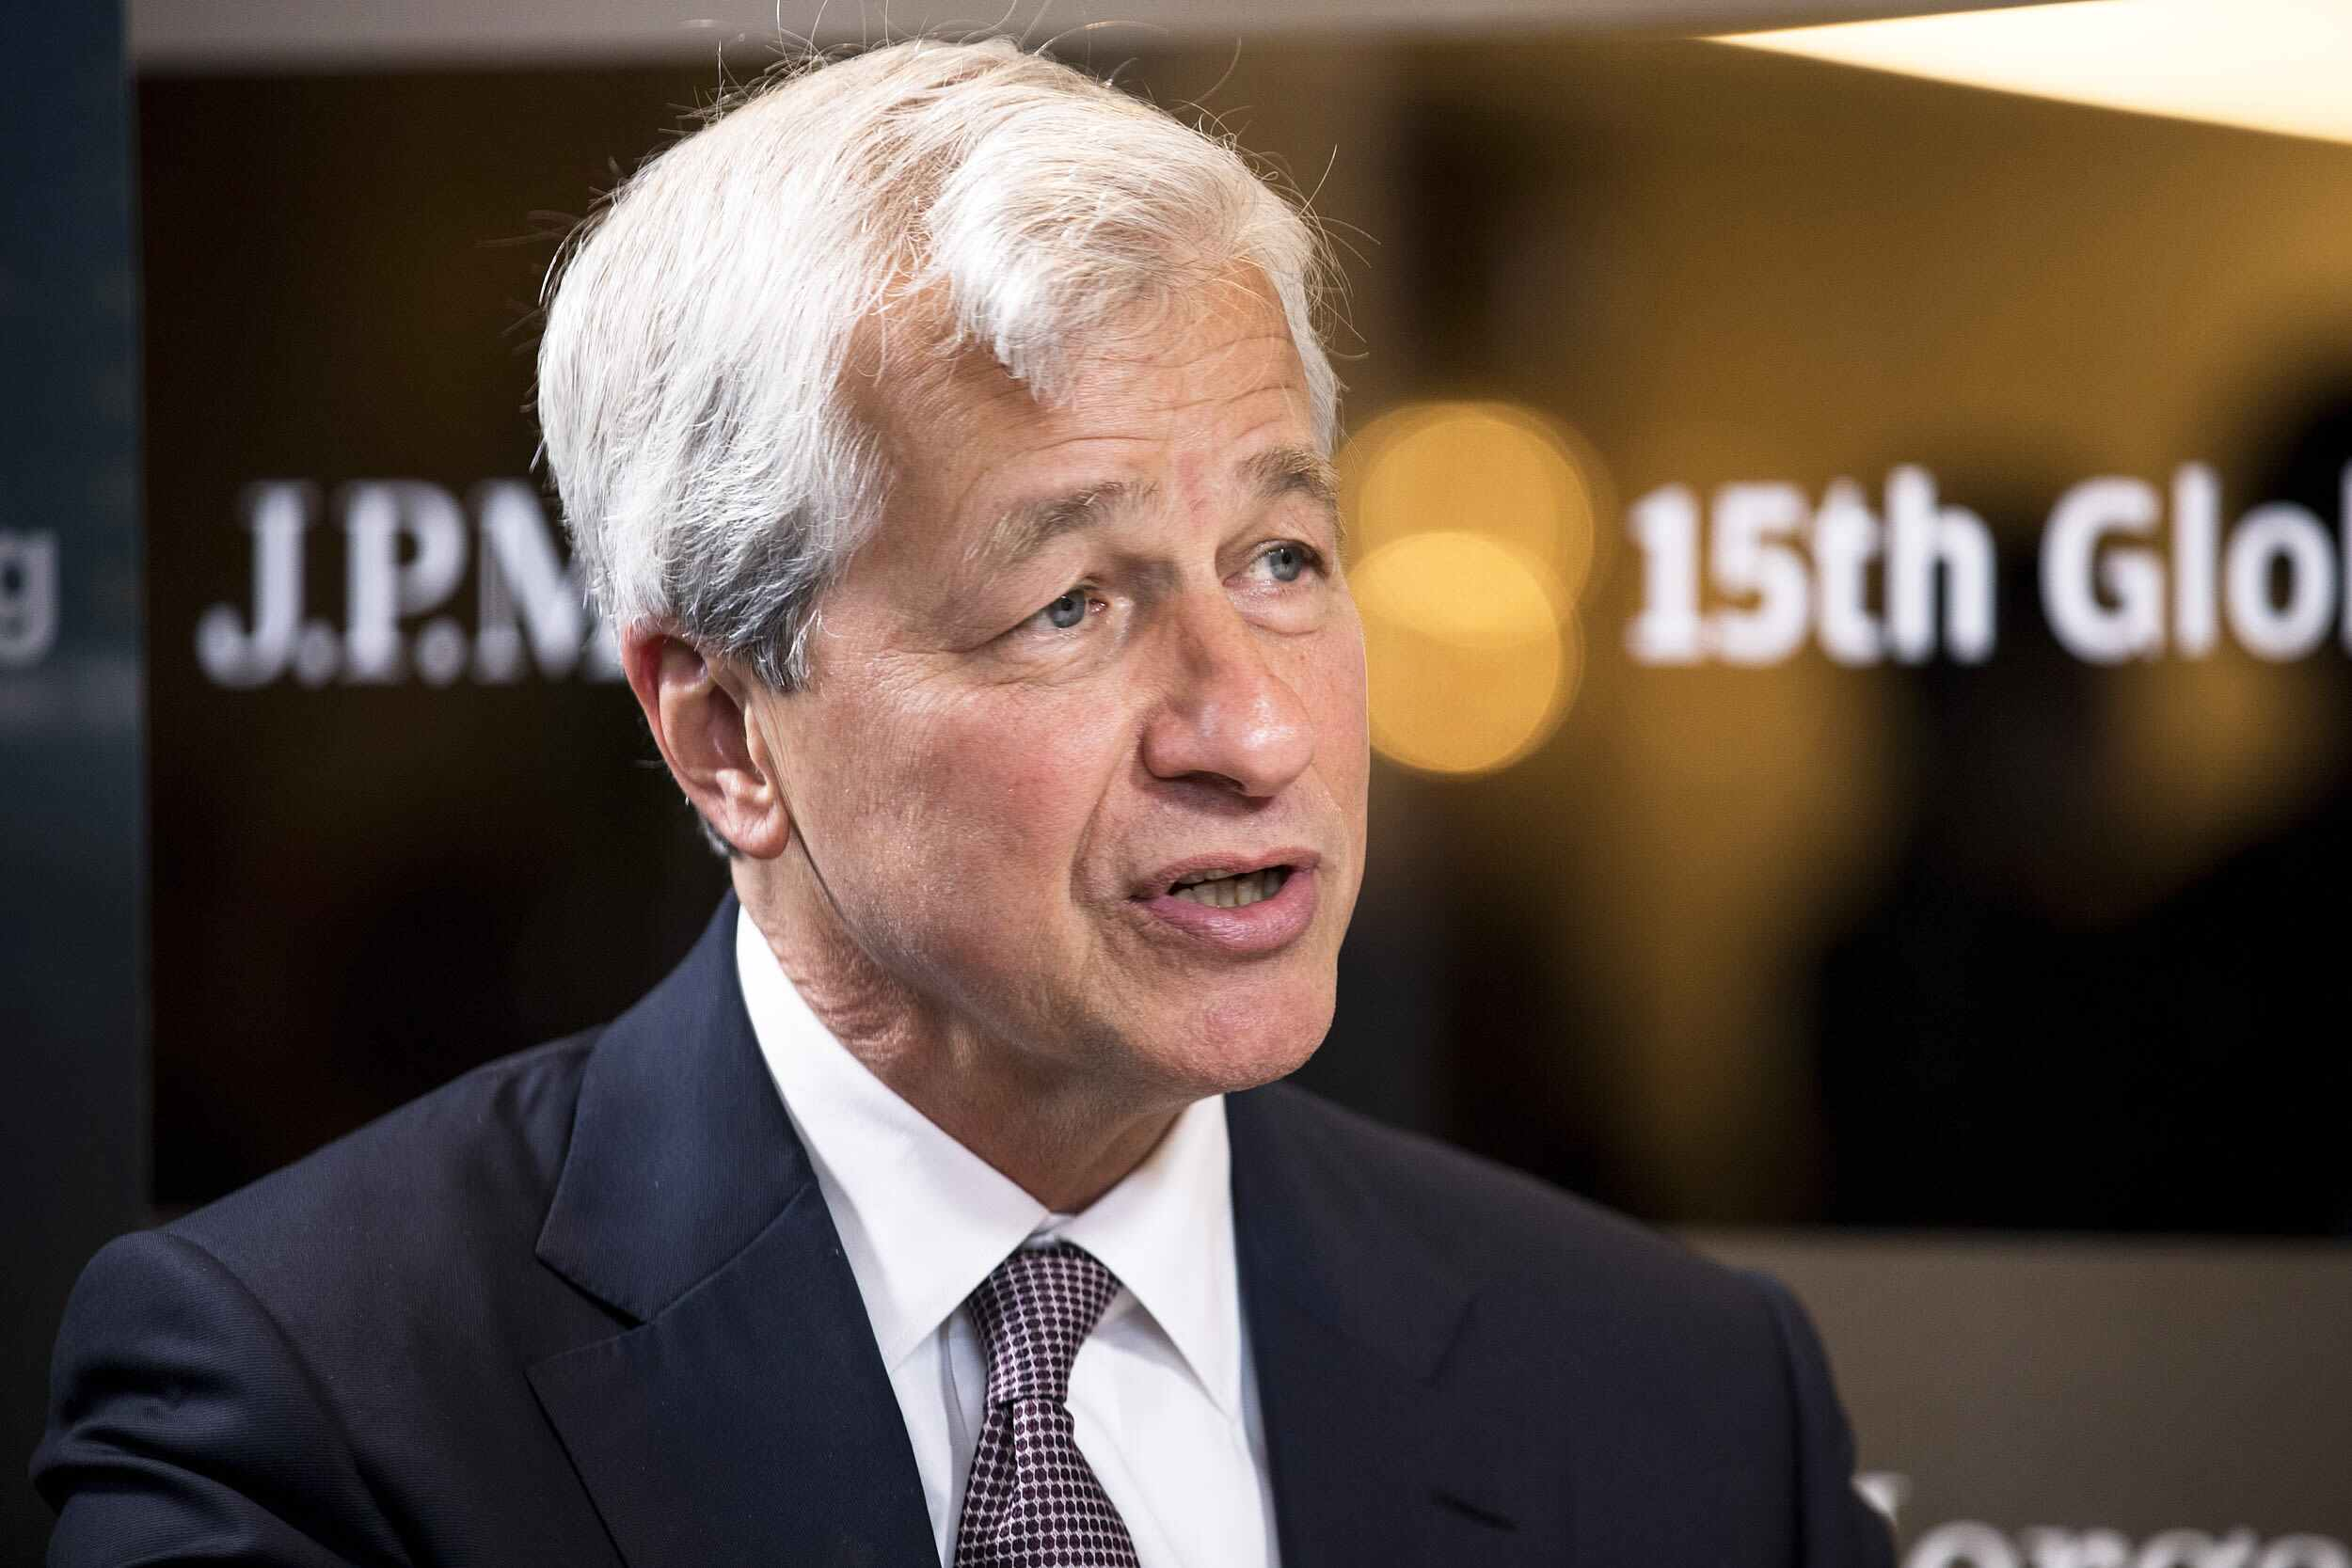 JPMorgan Chase is set to report first-quarter earnings following Dimon's dire warning about economy